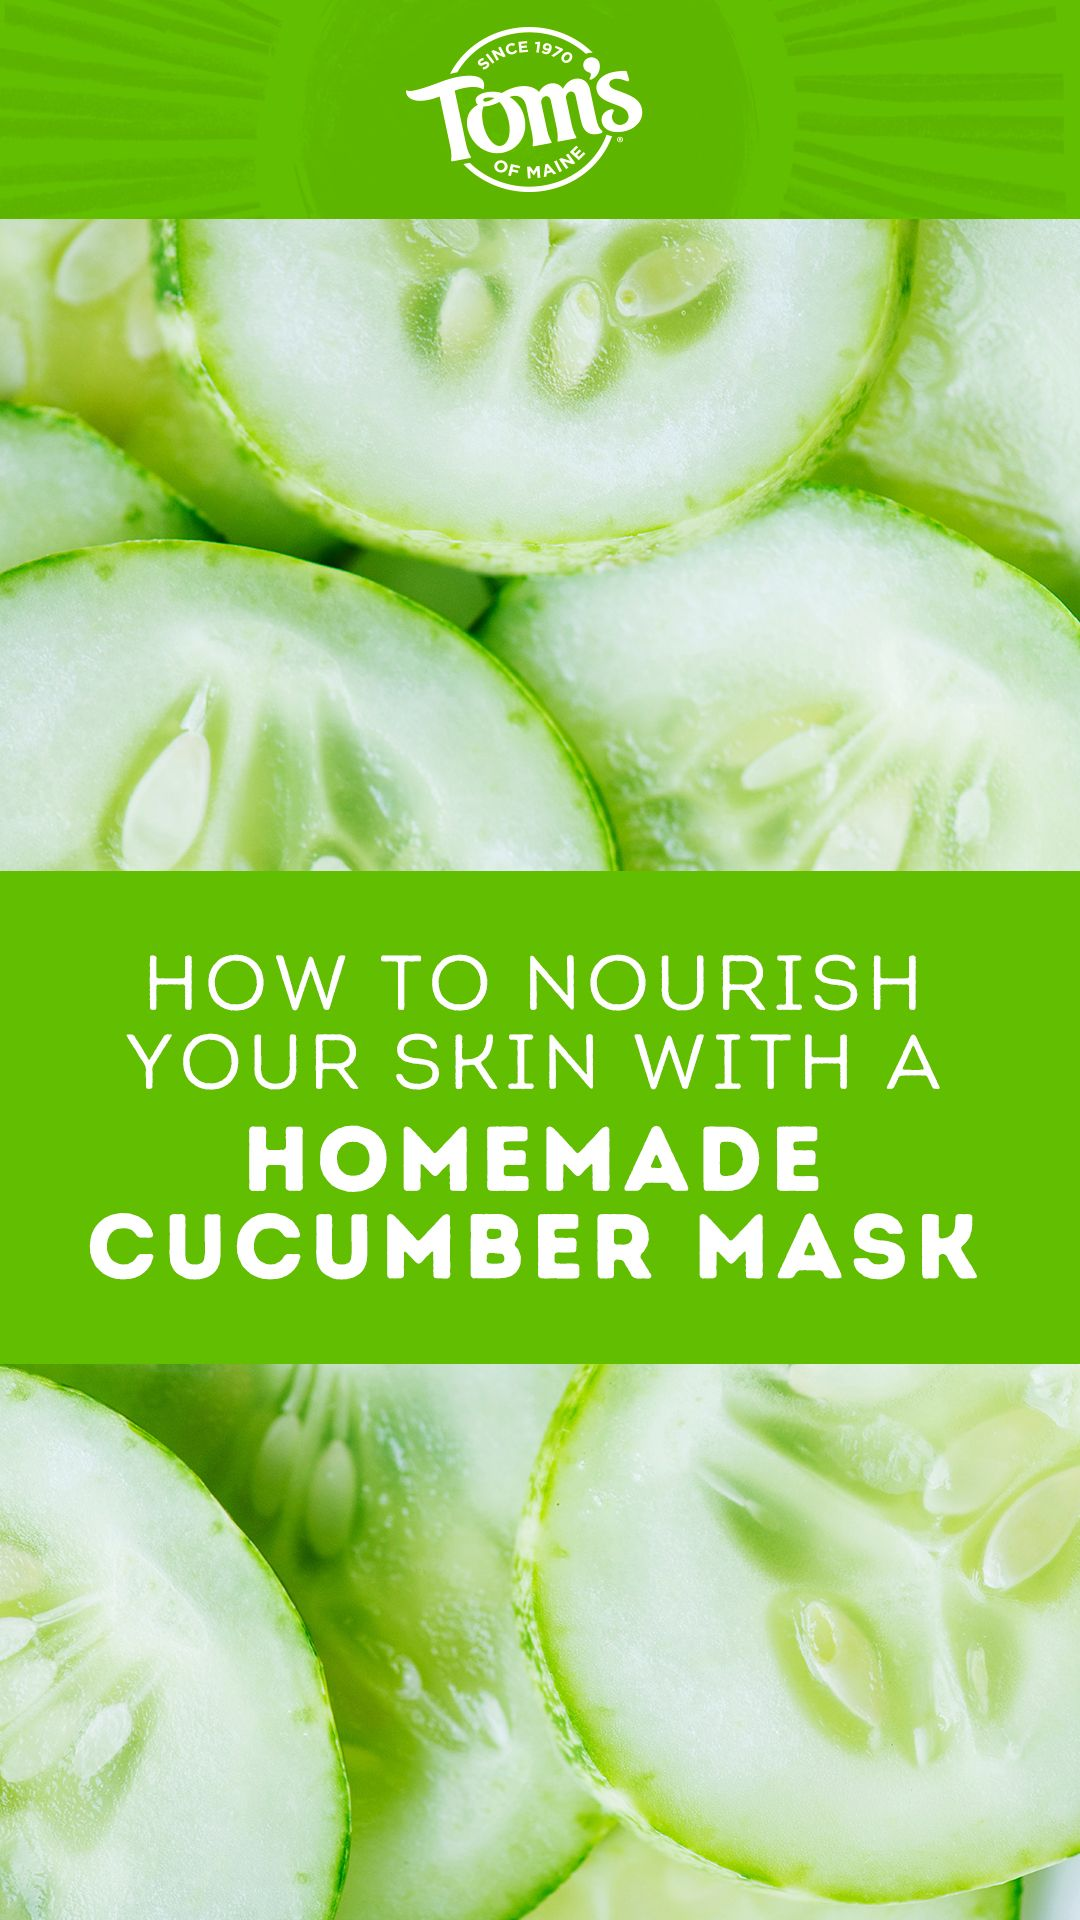 Photo of How to Nourish Your Skin with a Homemade Cucumber Mask